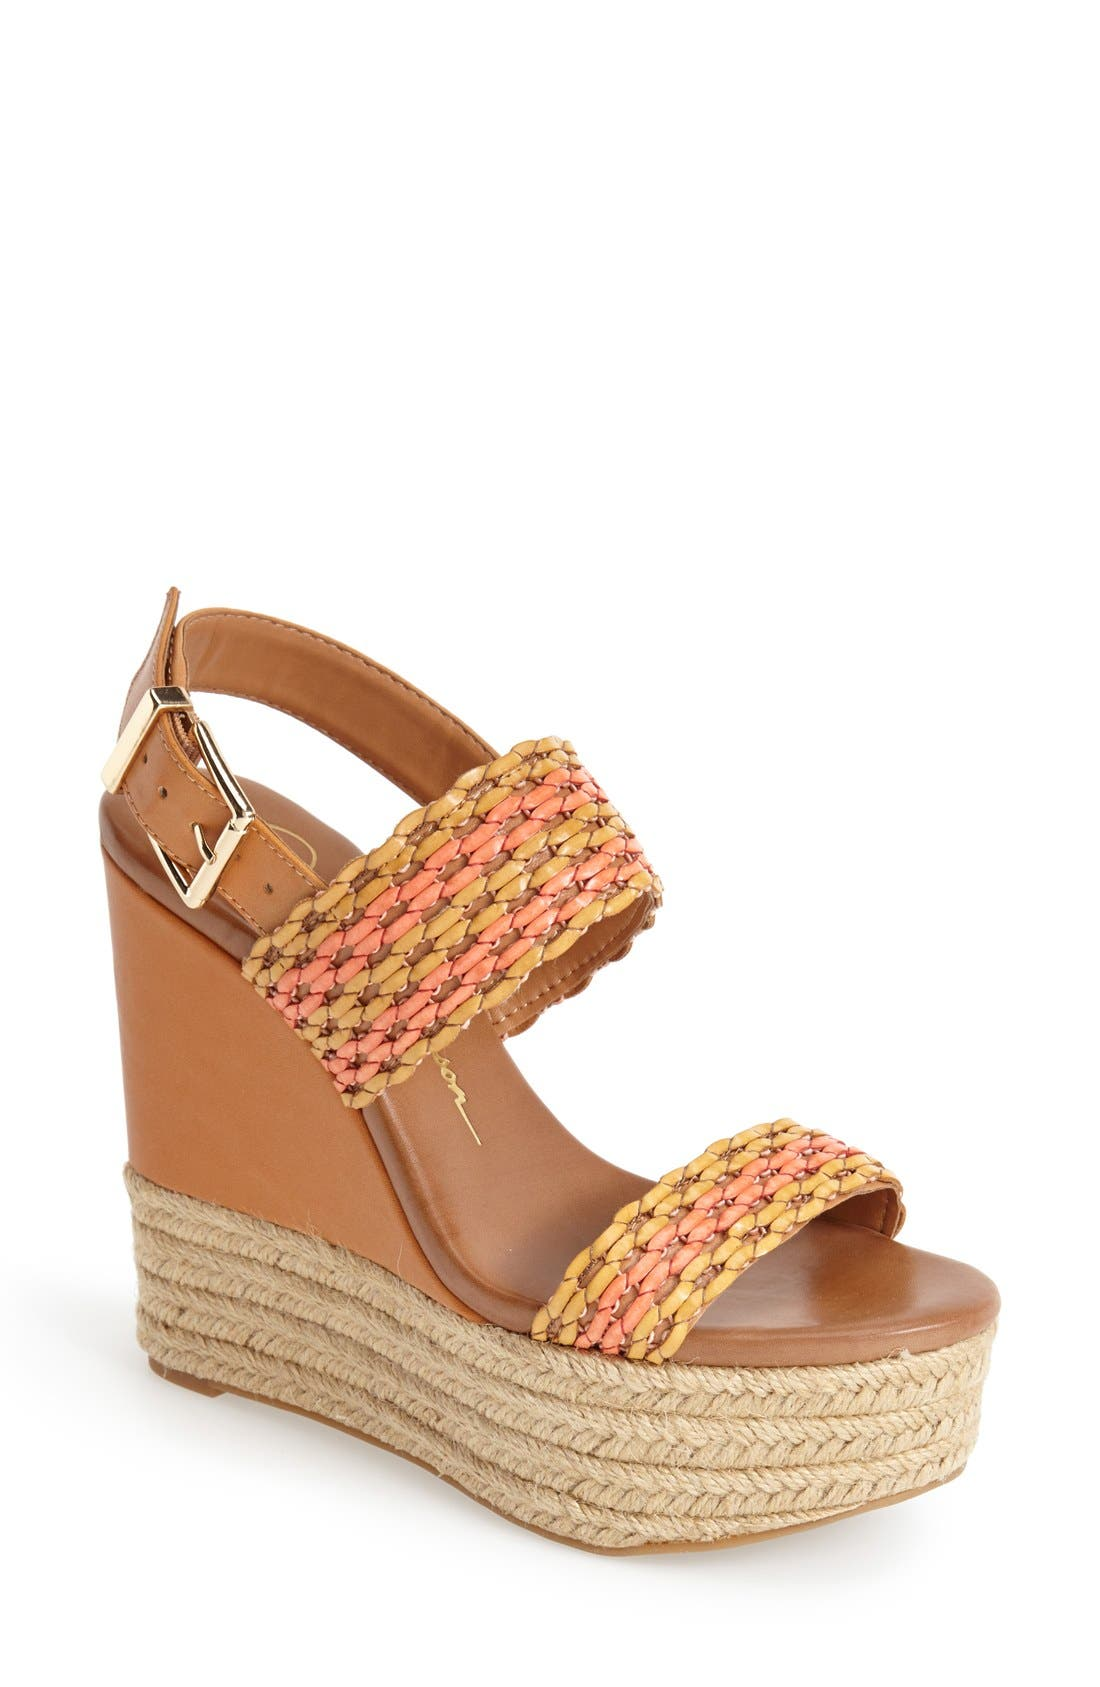 'Allyn' Wedge Platform Leather Sandal,                             Main thumbnail 1, color,                             Beachwood